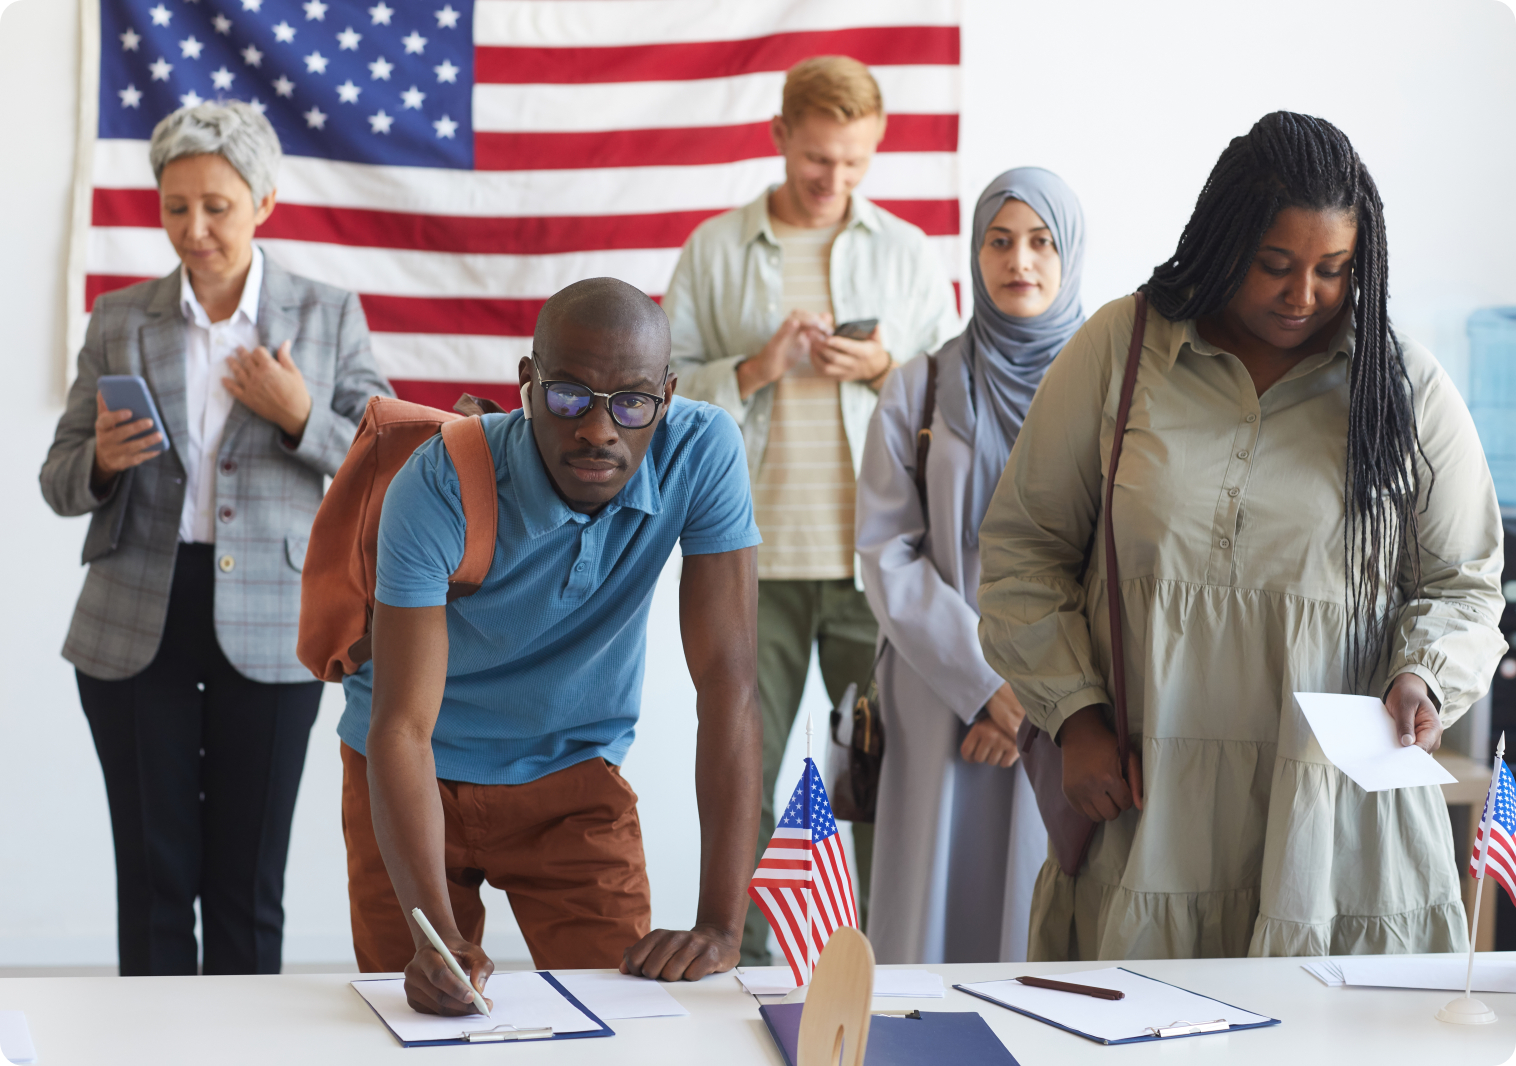 10 Things To Do From Now Until Election Day